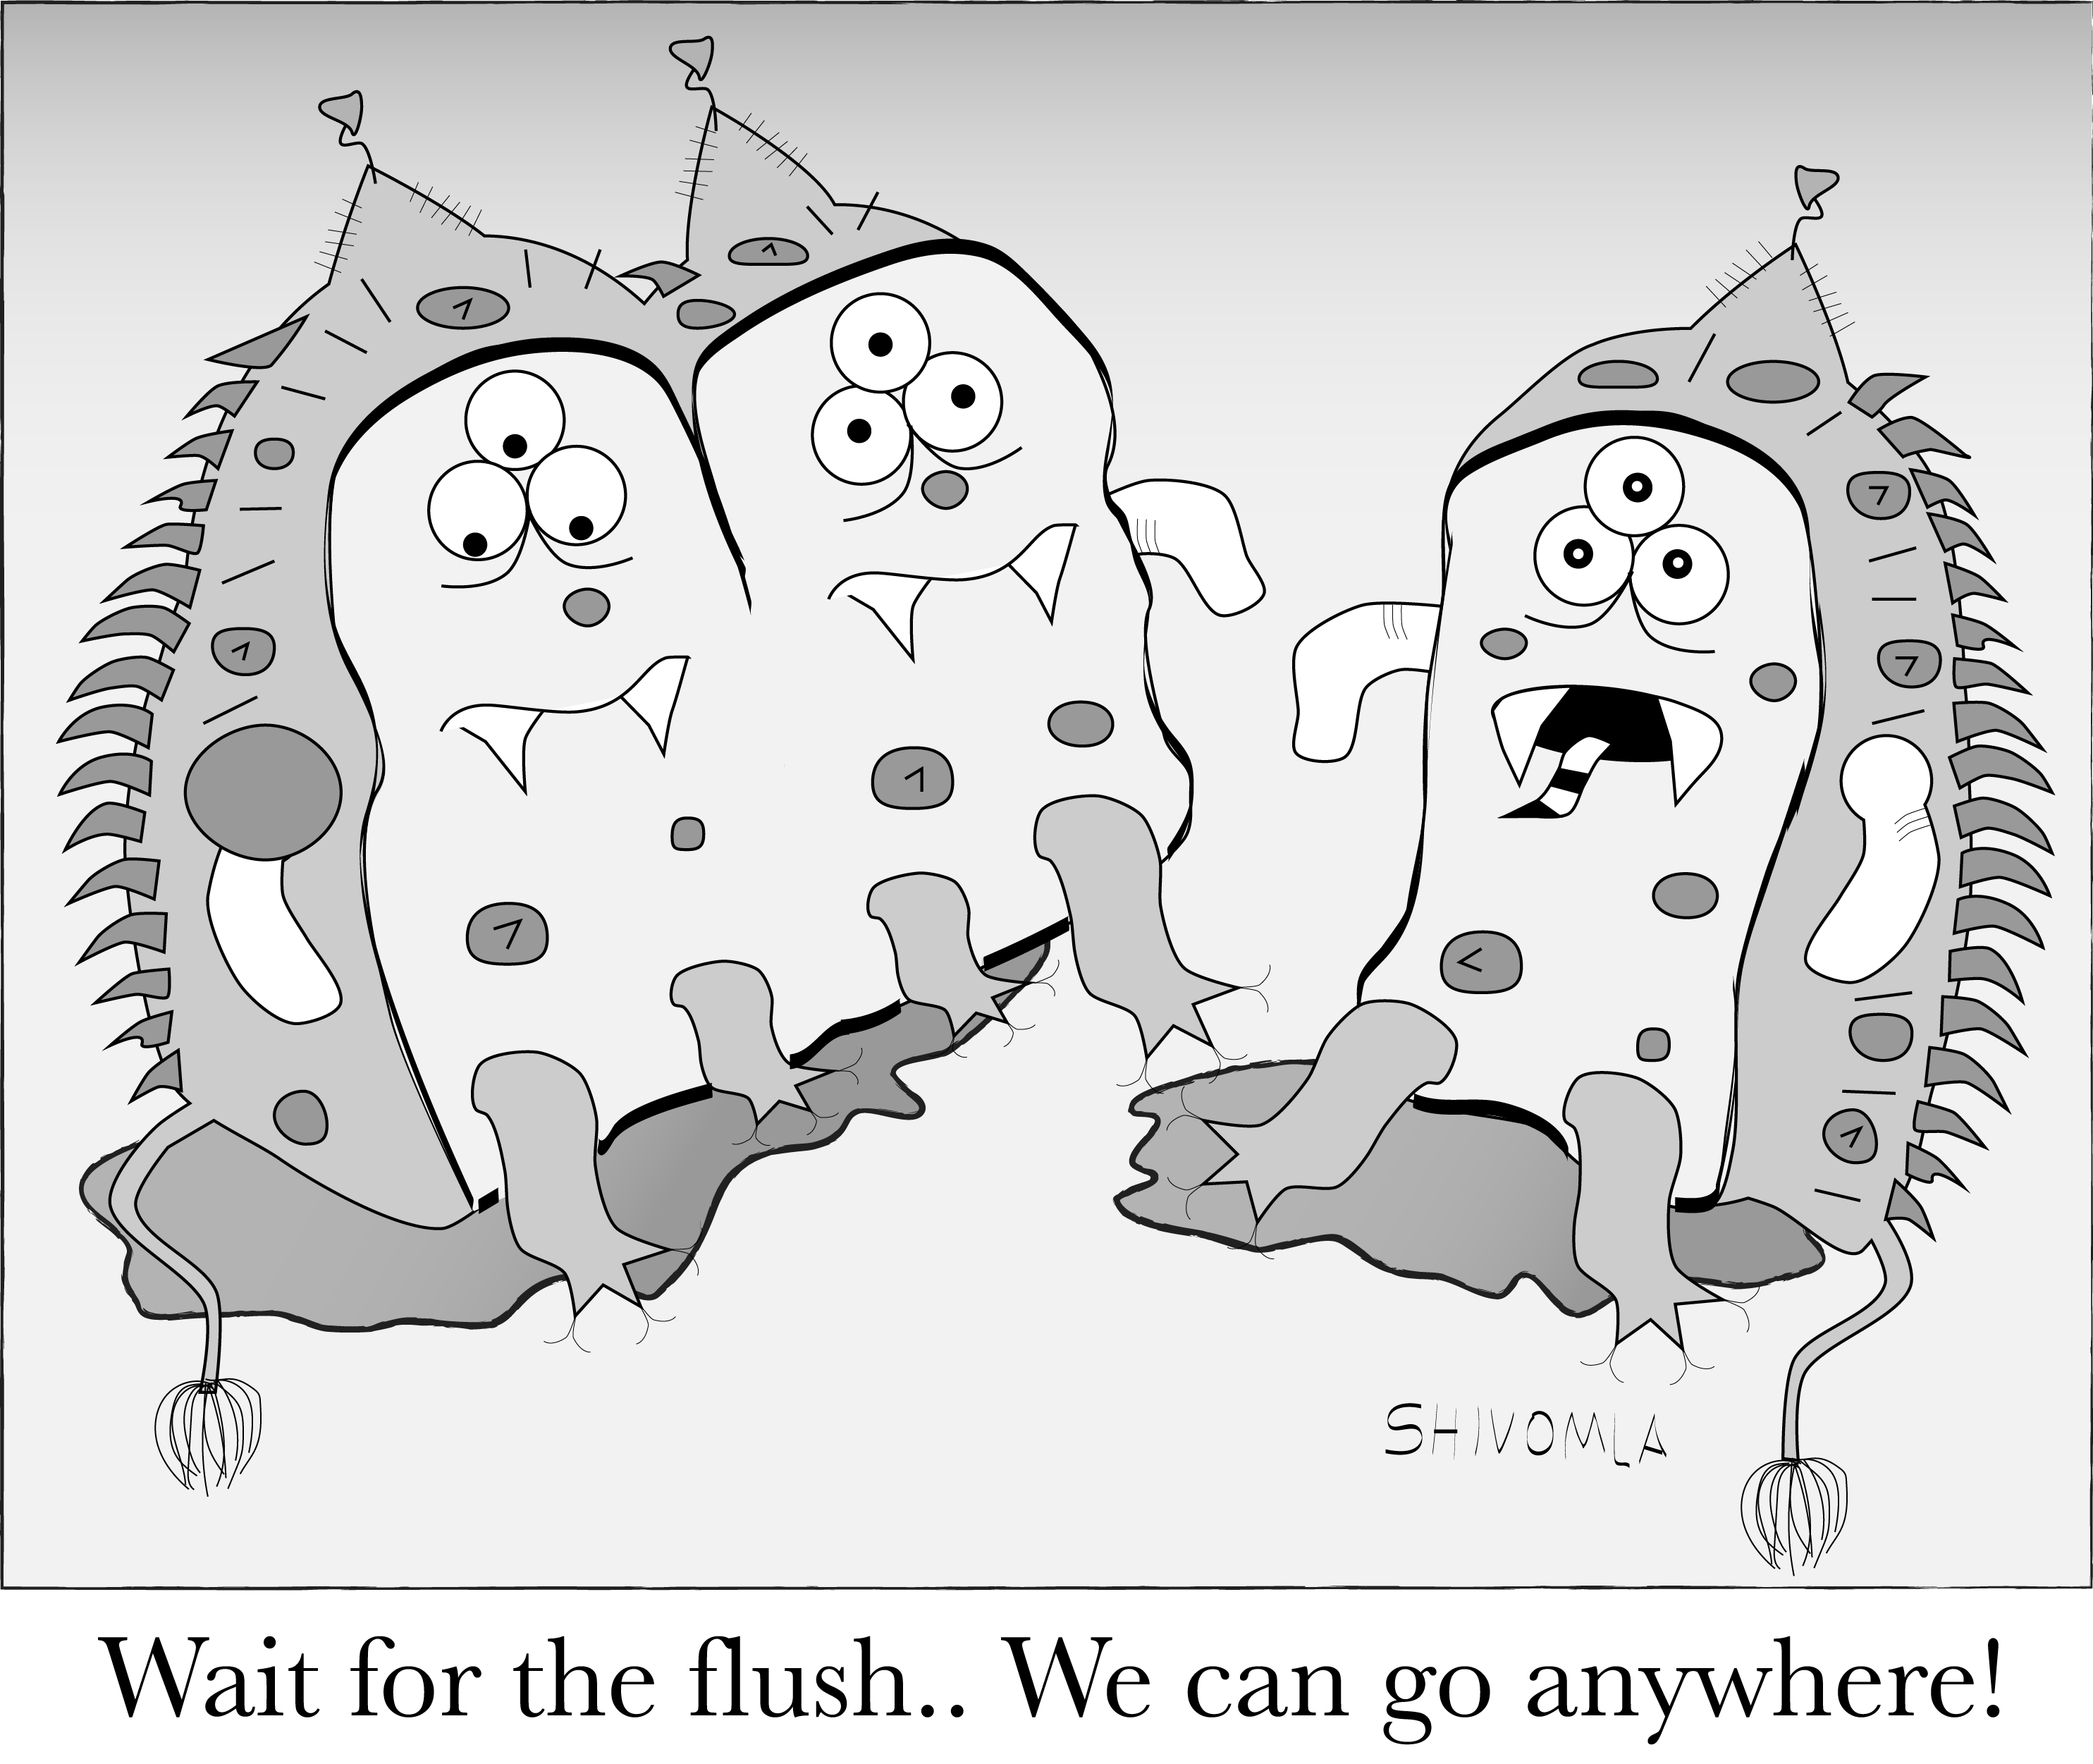 Flush_Bacteria_color